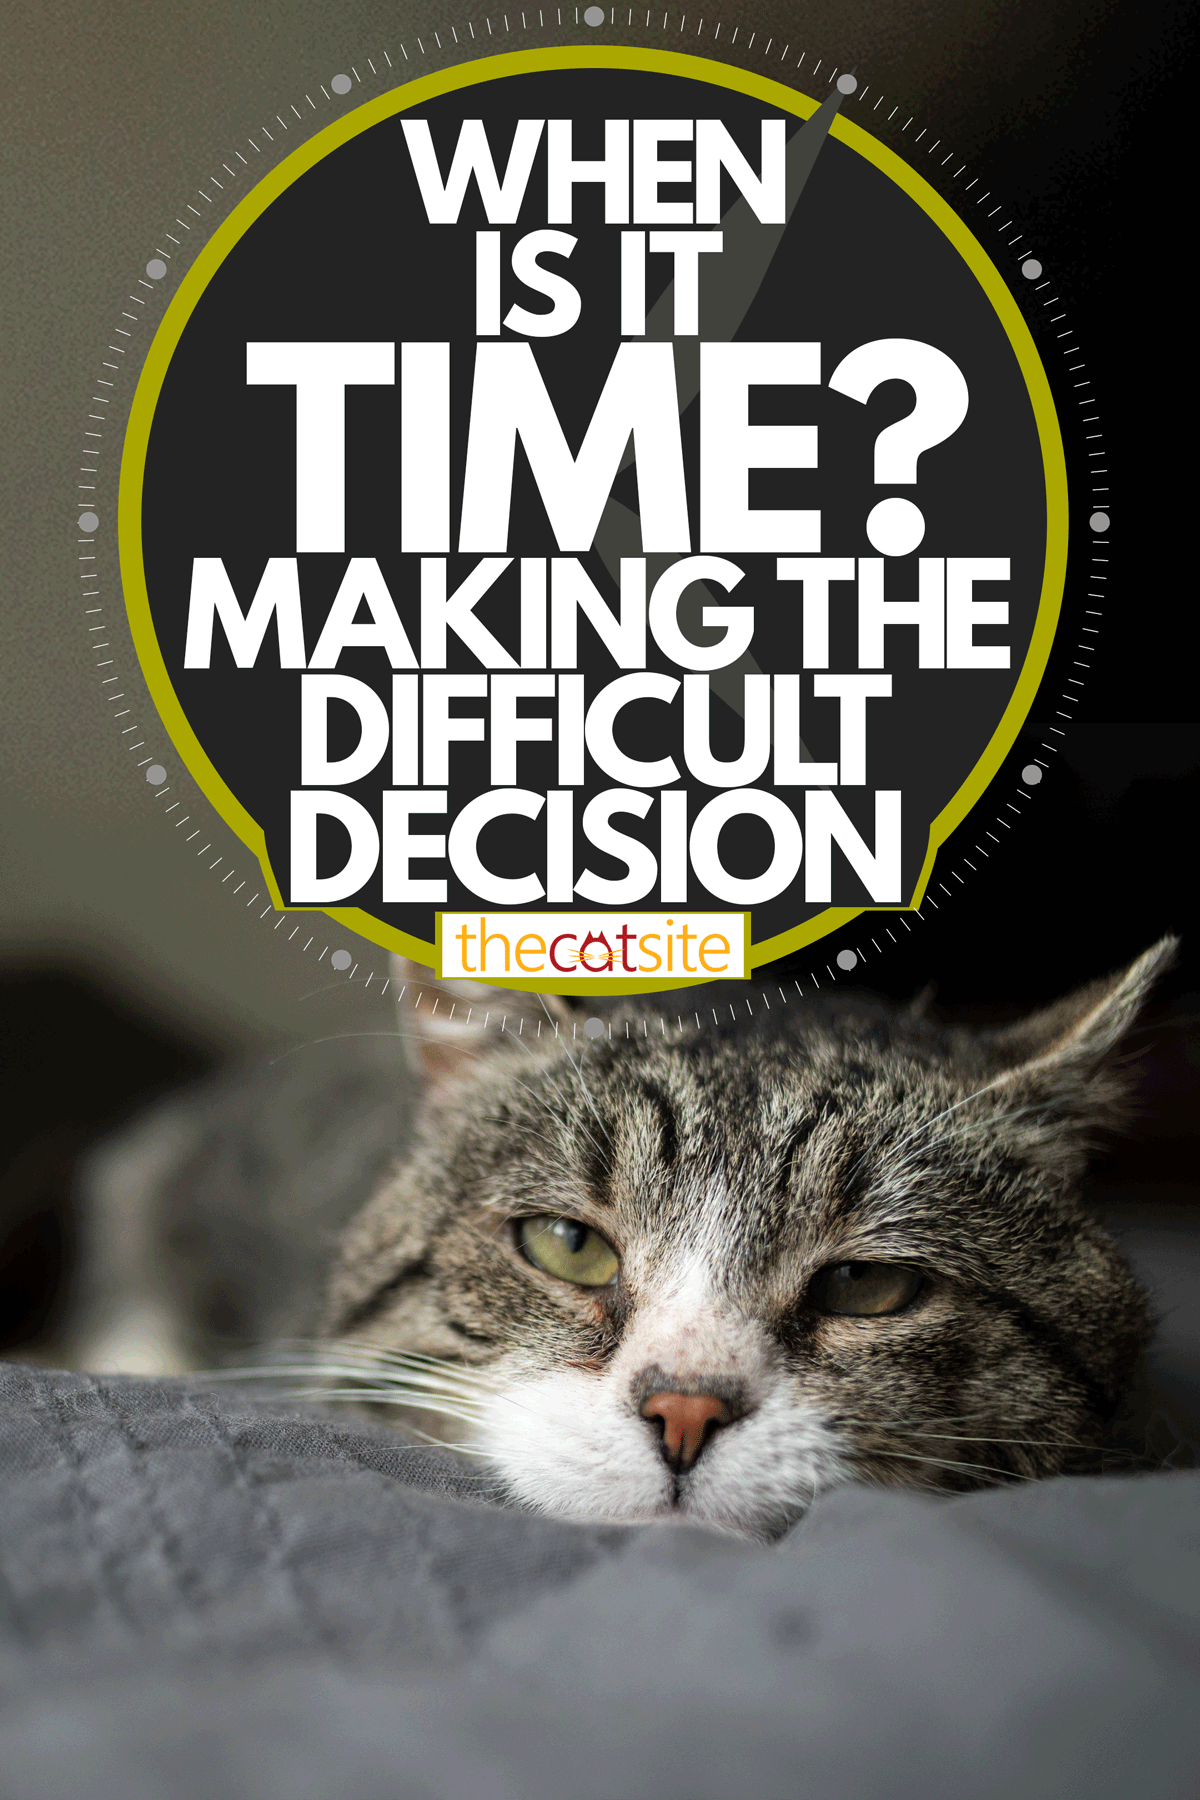 An old cat lying and resting on the bed, When Is It Time? - Making The Difficult Decision